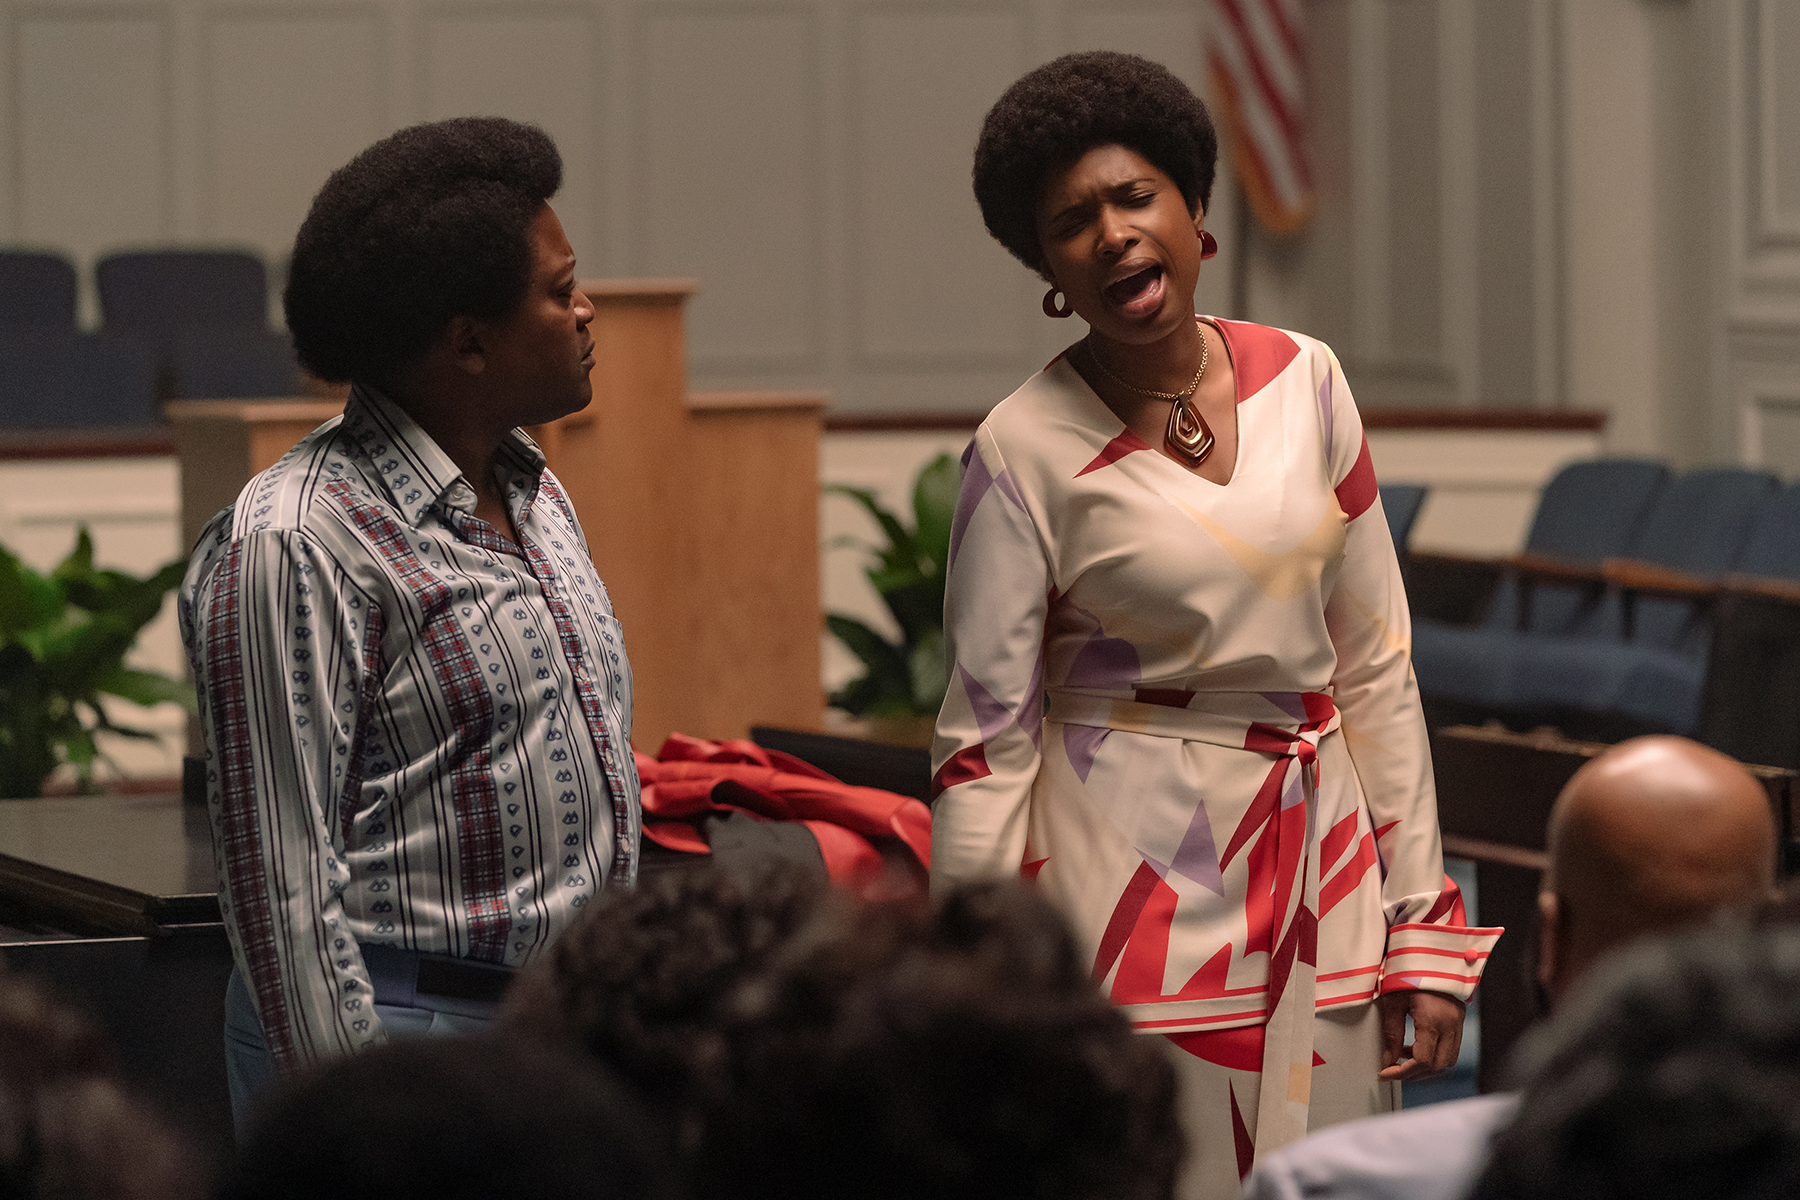 R_22584_RCTituss Burgess stars as Reverend Dr. James Cleveland and Jennifer Hudson as Aretha Franklin in RESPECT, A Metro Goldwyn Mayer Pictures film Photo credit: Quantrell D. Colbert © 2021 Metro-Goldwyn-Mayer Pictures Inc. All Rights Reserved